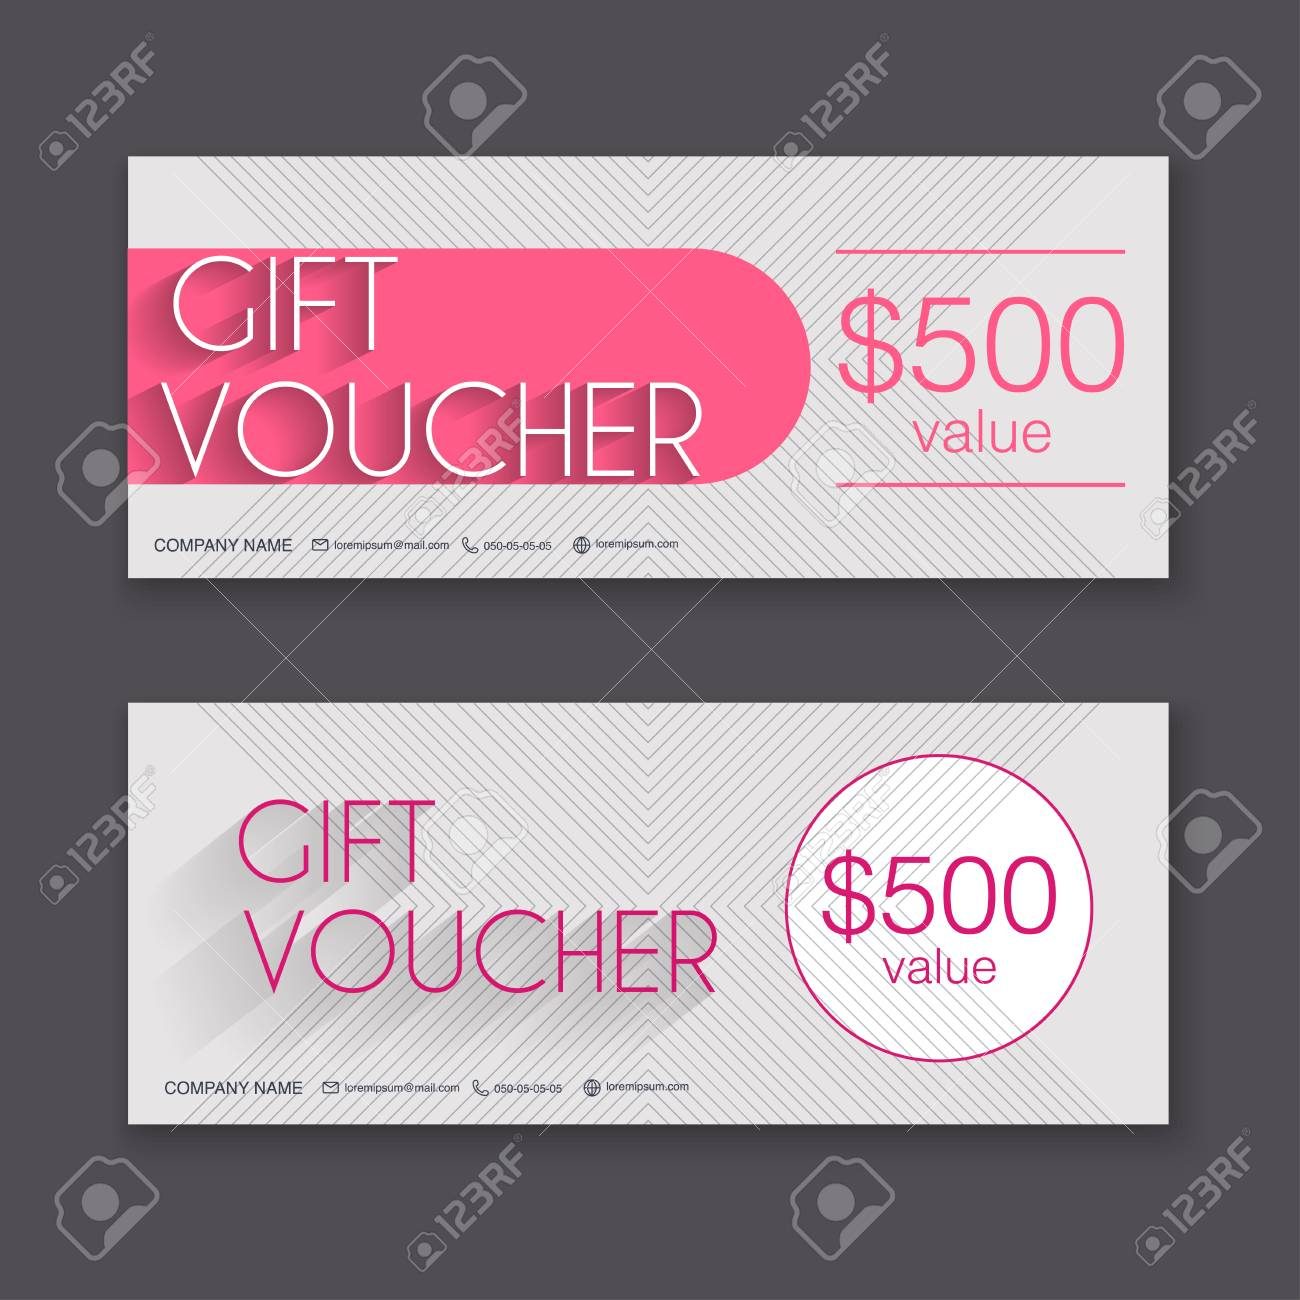 Gift Voucher Template With Colorful Pattern Gift Certificate Royalty Free Cliparts Vectors And Stock Illustration Image 50354609